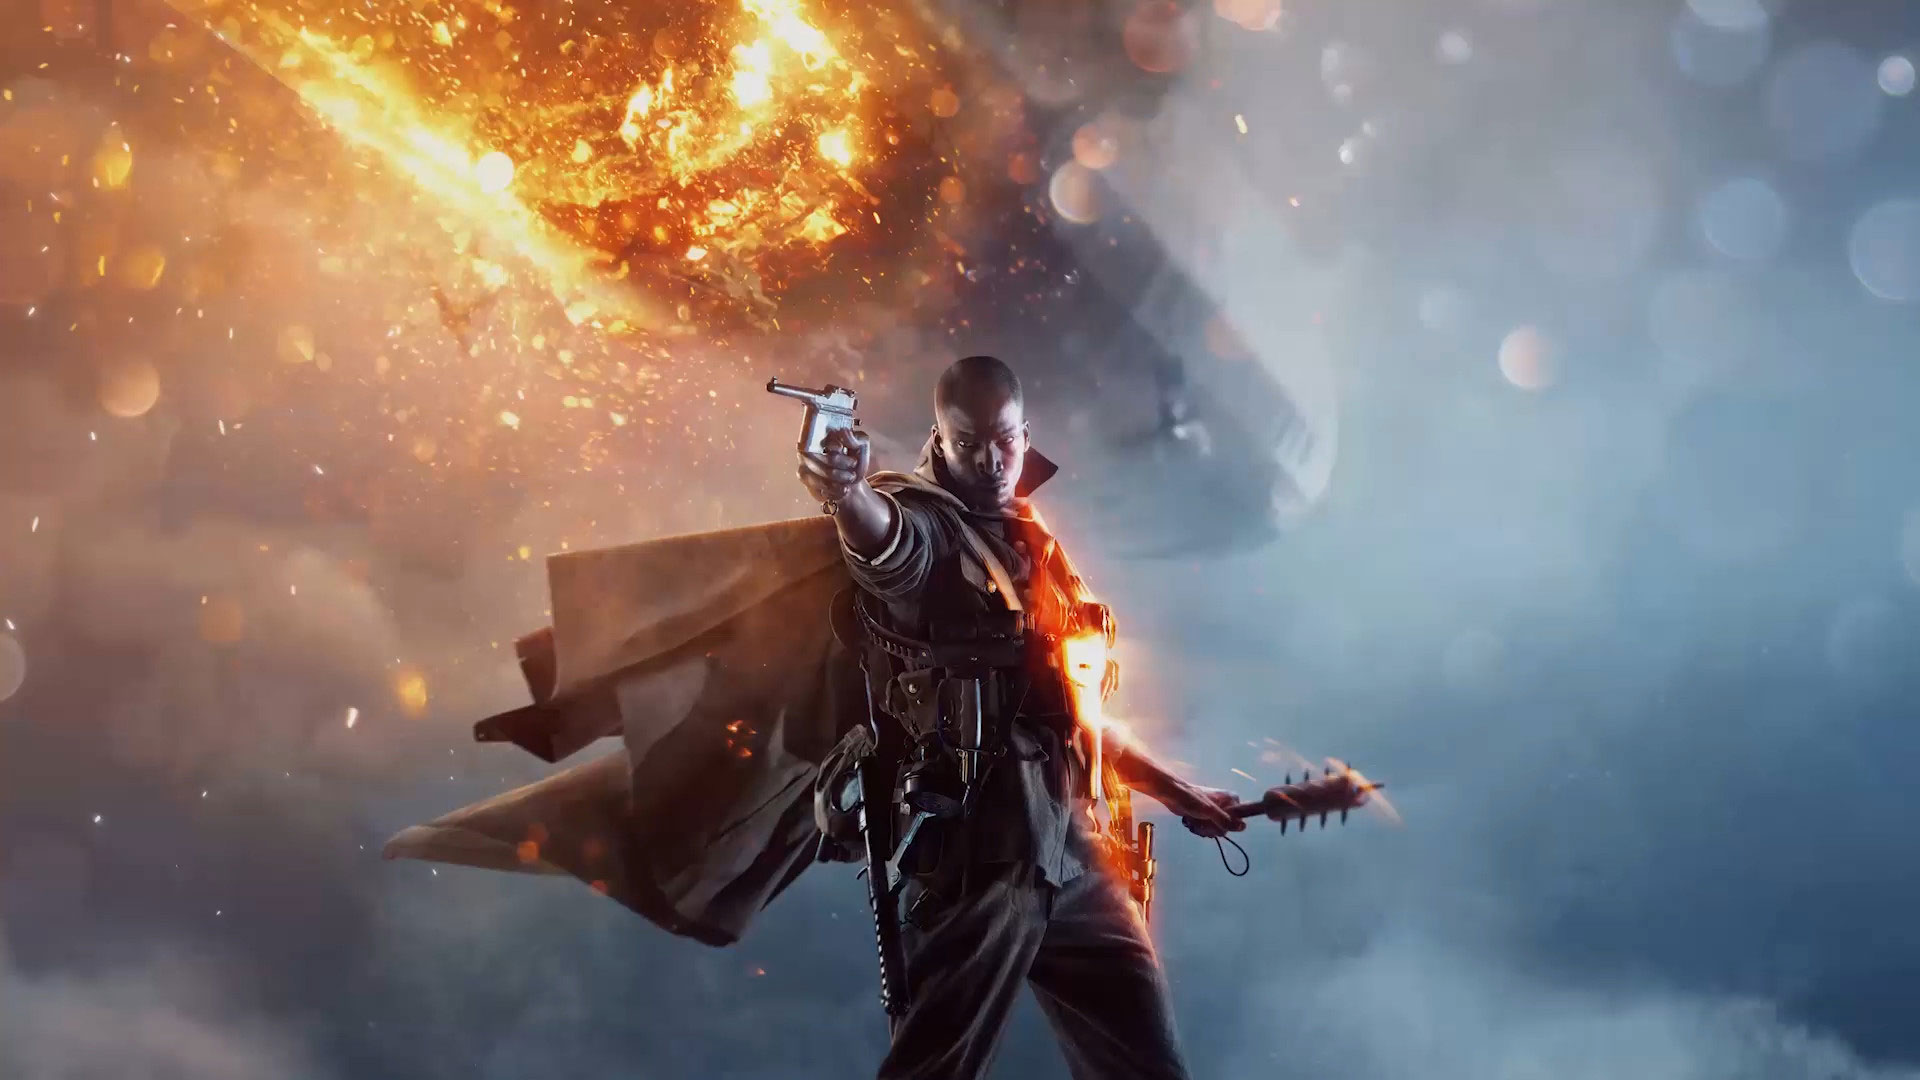 battlefield 1 wallpapers pictures -#main